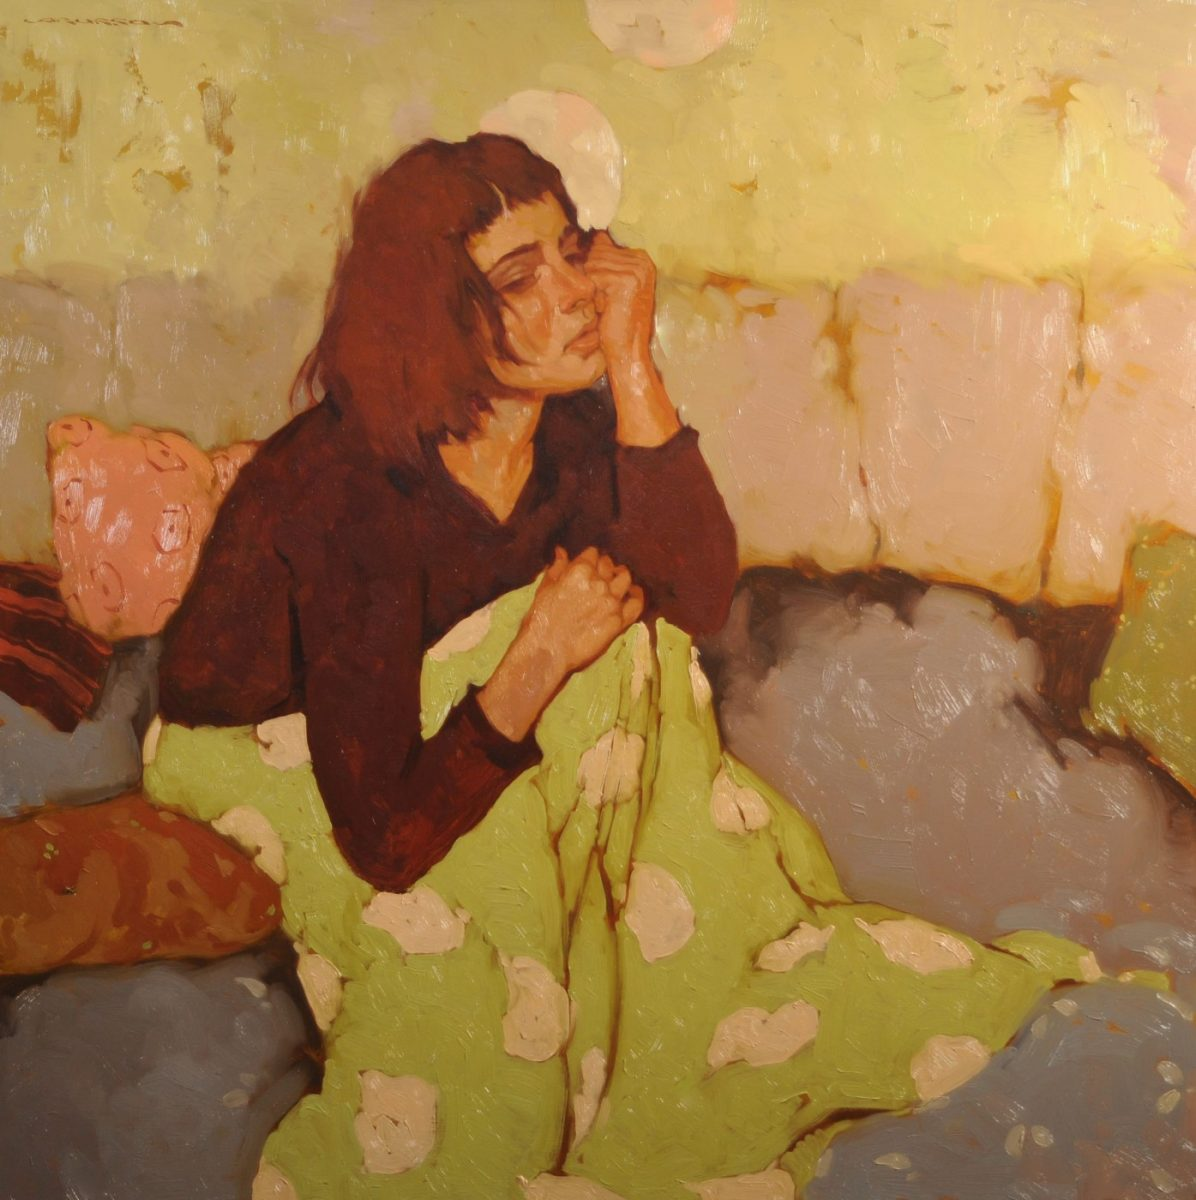 With her own Thoughts painting by Joseph Lorusso